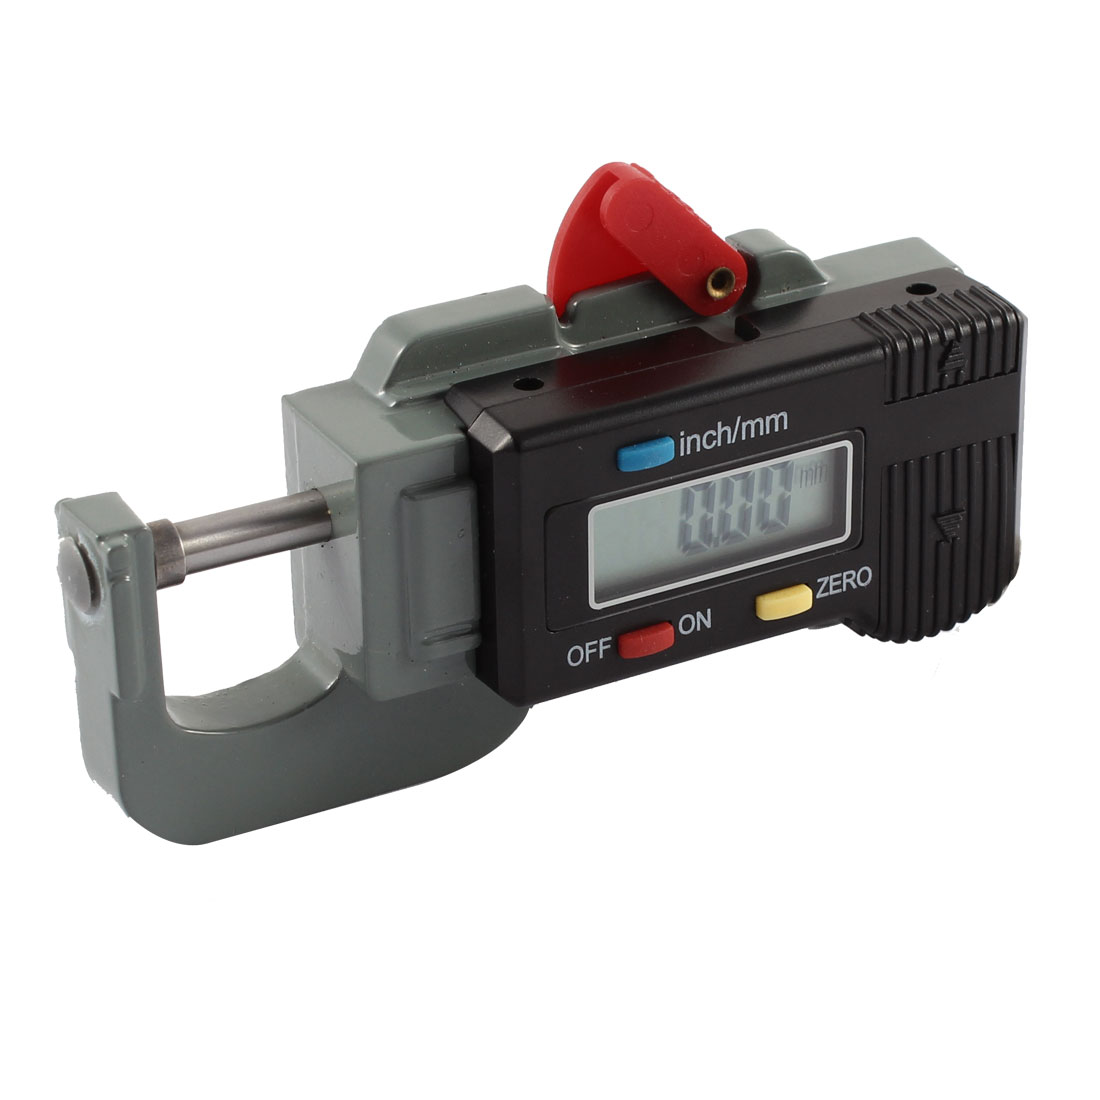 0-12.7mm Digital LCD Inch/mm Metal Grip Thickness Gauge Tool